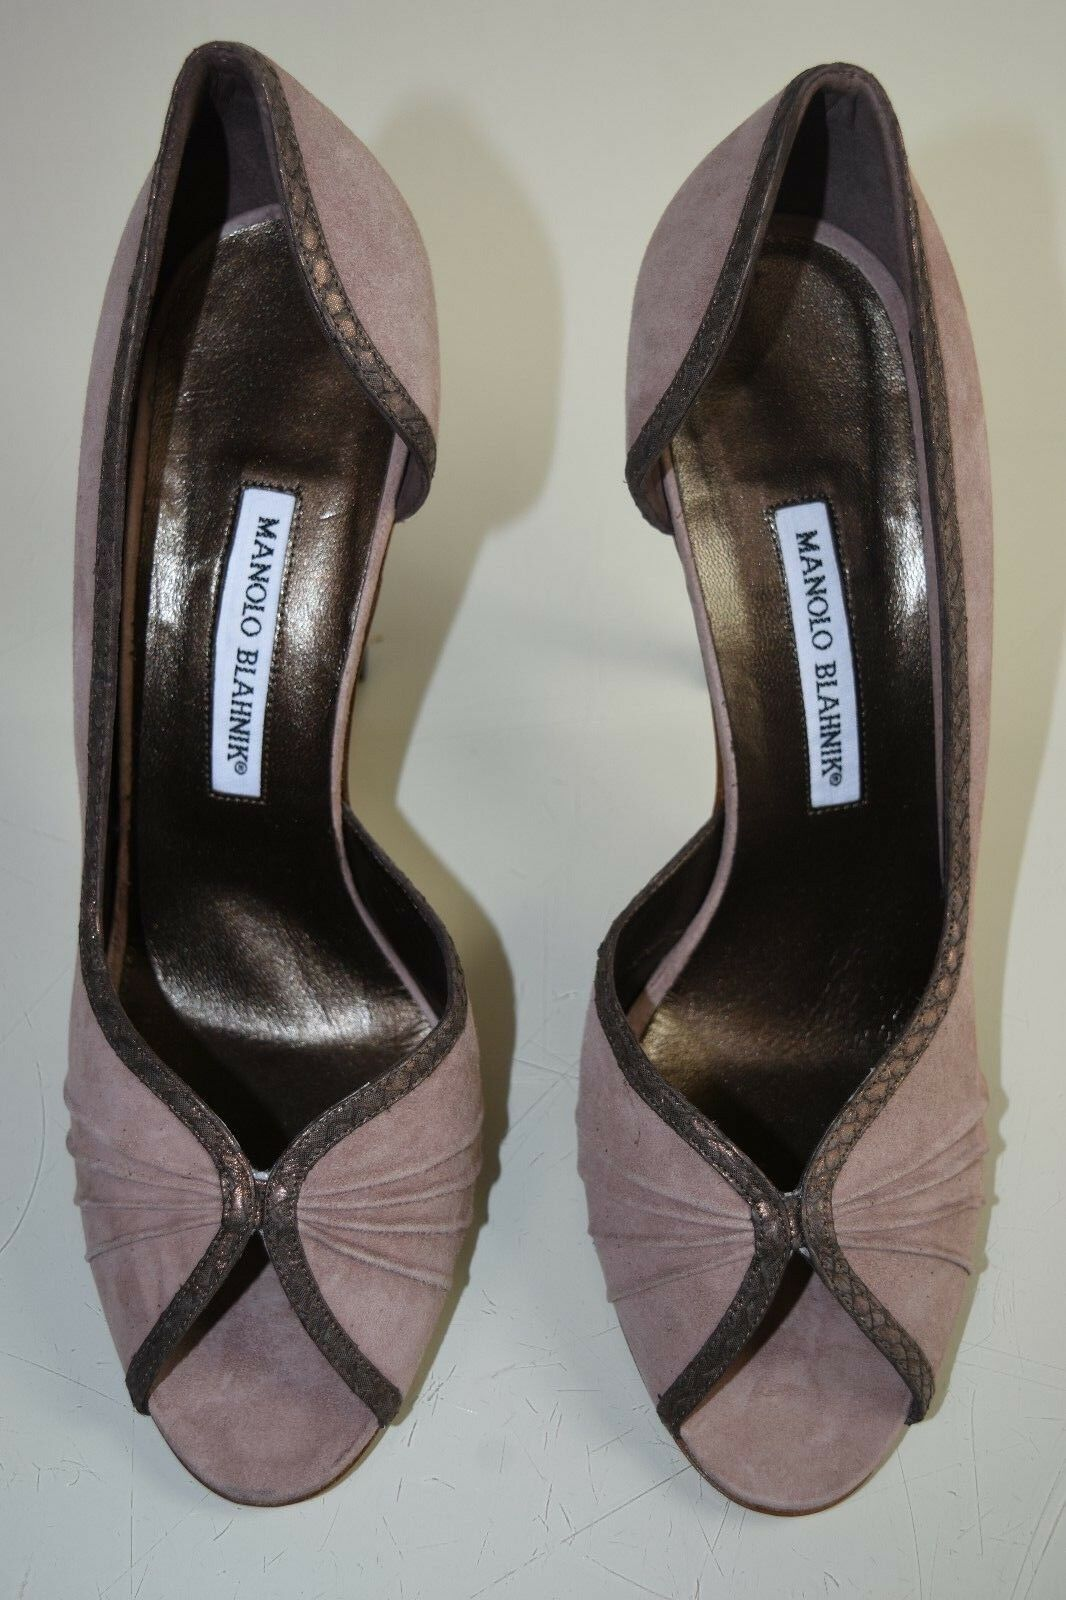 New MANOLO MANOLO MANOLO BLAHNIK Snake trim BEIGE BROWN suede DECI Peep toe SHOES HEELS 41.5 b750cc